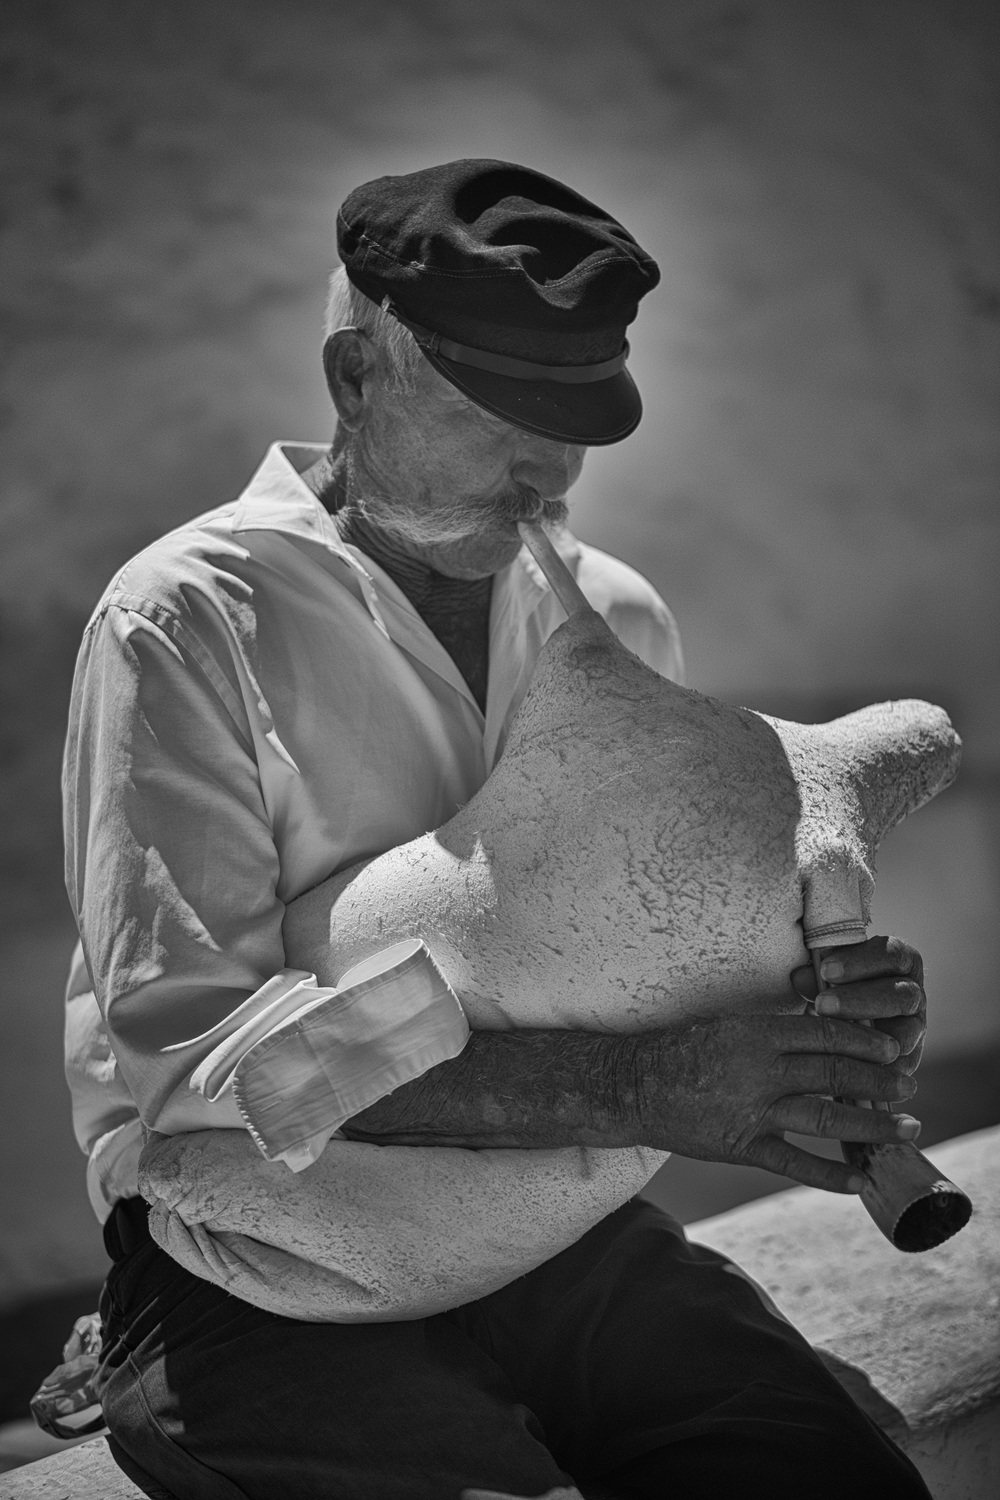 Traditional Mykonos bagpipes made from sheep